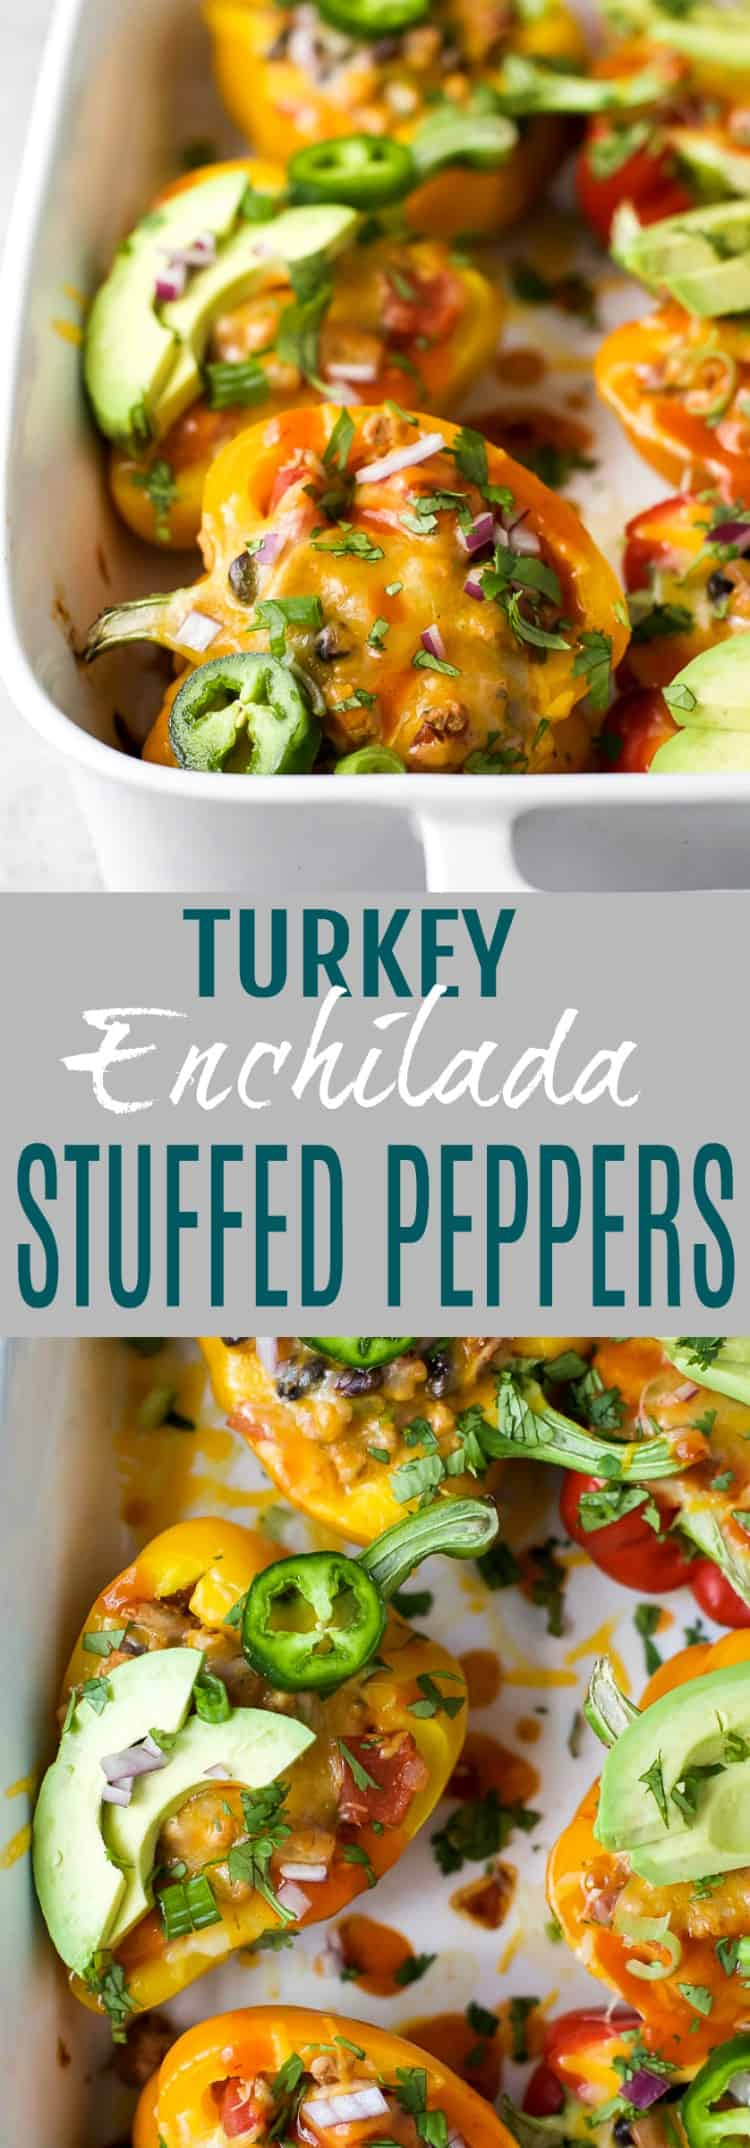 Cheesy Turkey Enchilada Stuffed Peppers filled with tex-mex flavor and covered in melty cheese. These gluten free Stuffed Peppers make an absolutely delicious healthy weeknight dinner for the family.